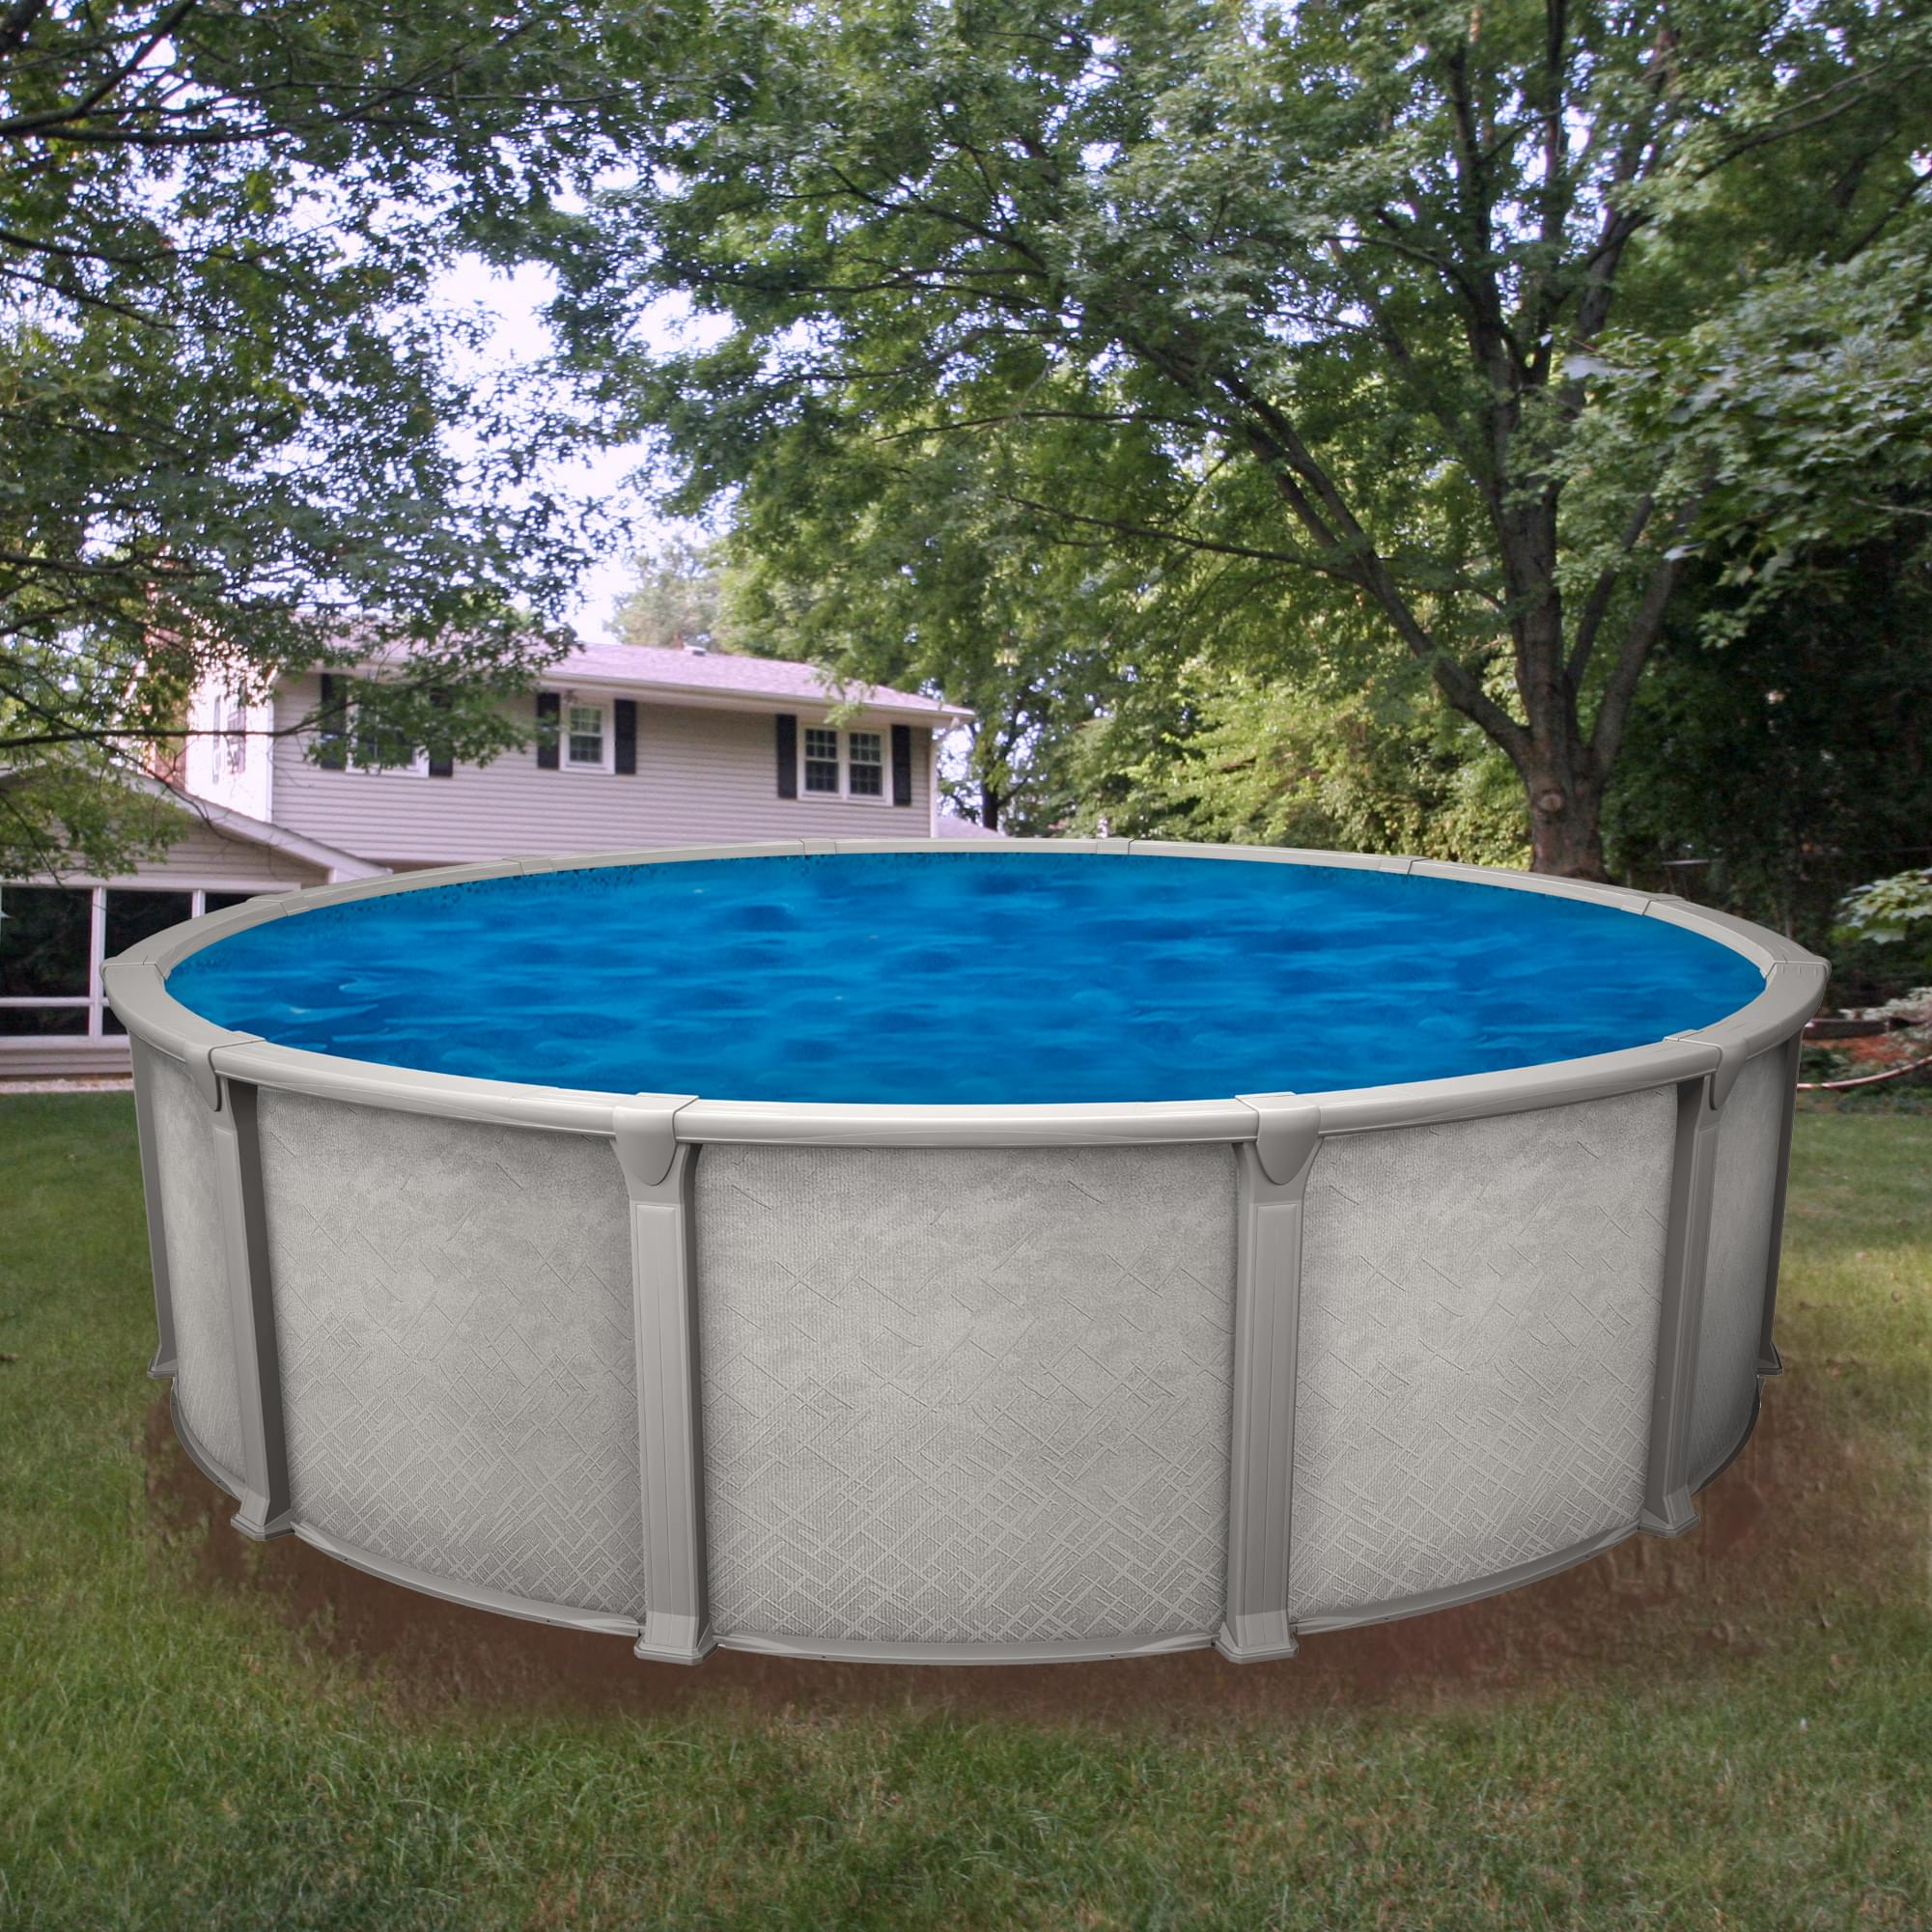 Galaxy 15 ft round above ground pool pool supplies canada for Above ground pools